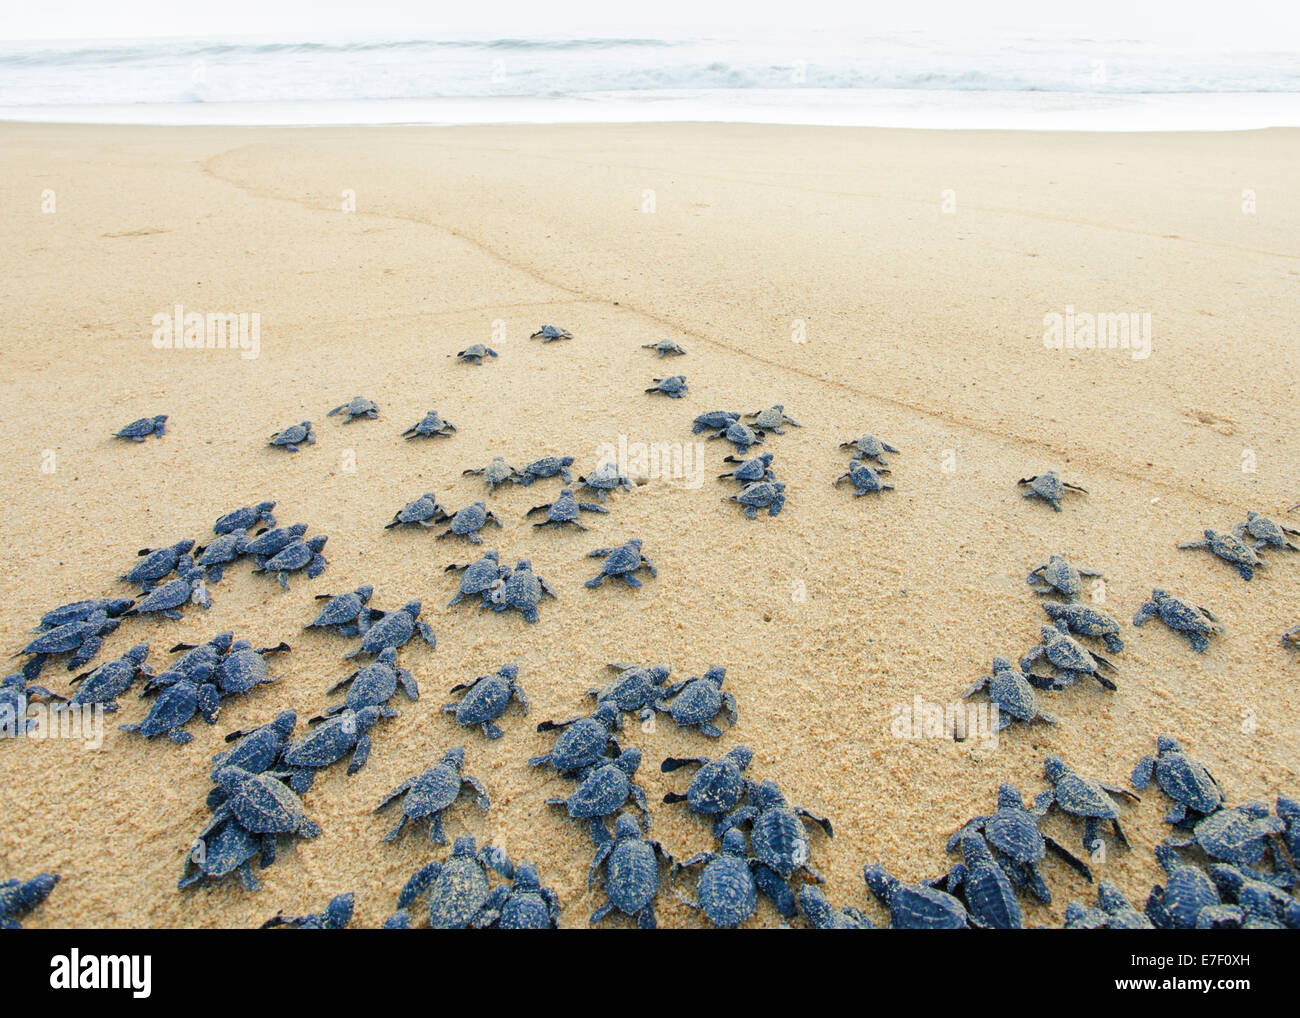 Newly hatched Olive Ridley sea turtles head out to the Pacific Ocean on the Ixtapilla, Michoacan beach in Mexico - Stock Image